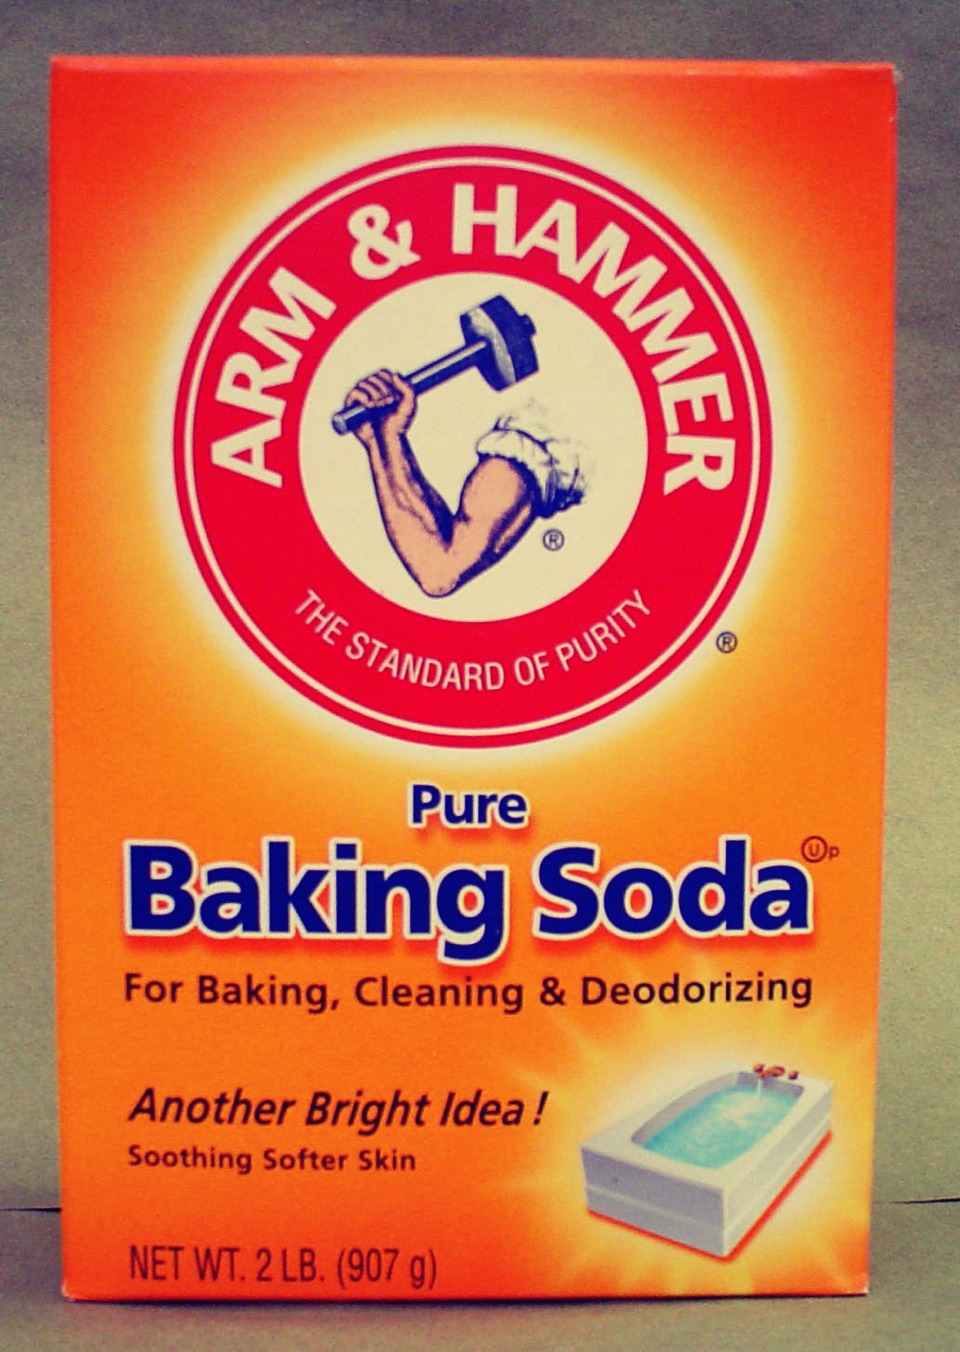 Make a paste out of baking soda and water. Apply to clean skin. Rinse after 5 minutes.